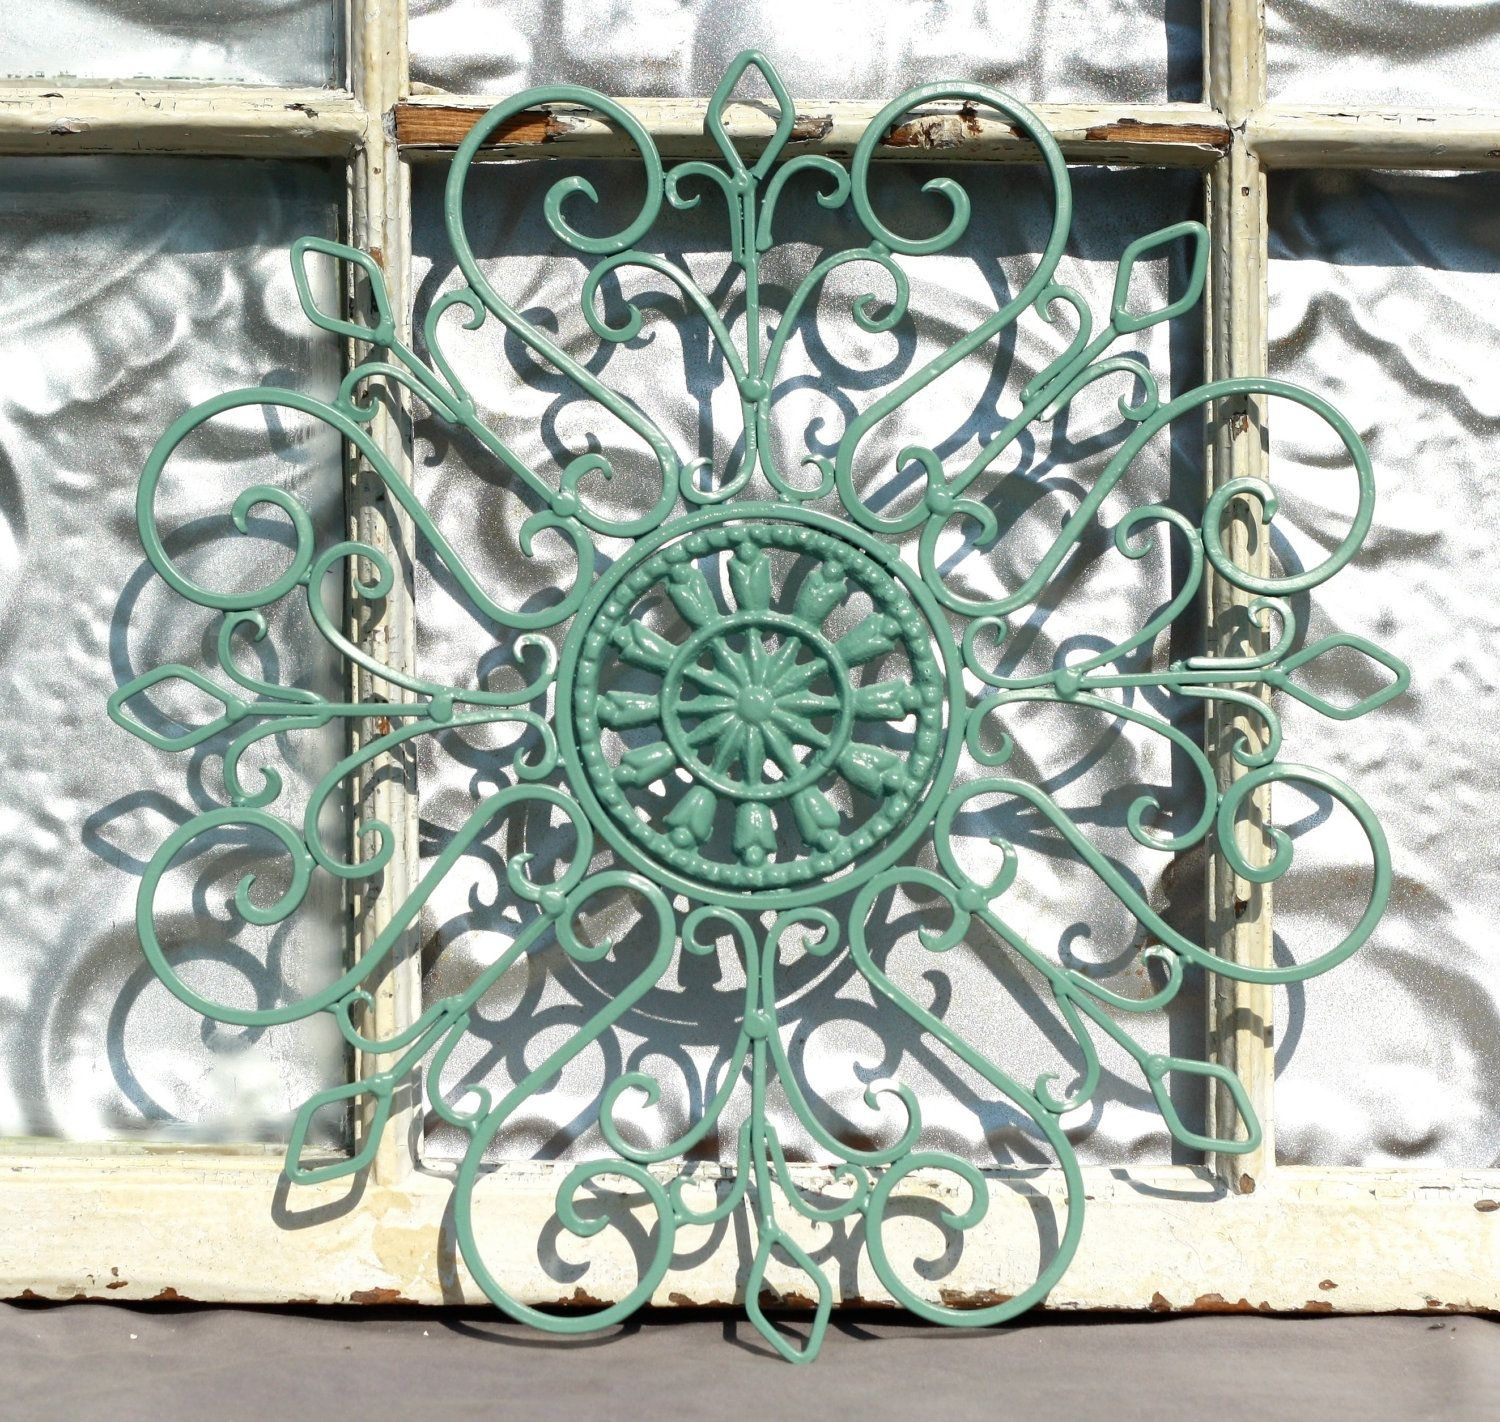 Wrought Iron Wall Decor/ Metal Wall Hanging/ Indoor/ Outdoor Metal Pertaining To Most Recent Abstract Outdoor Metal Wall Art (View 12 of 14)